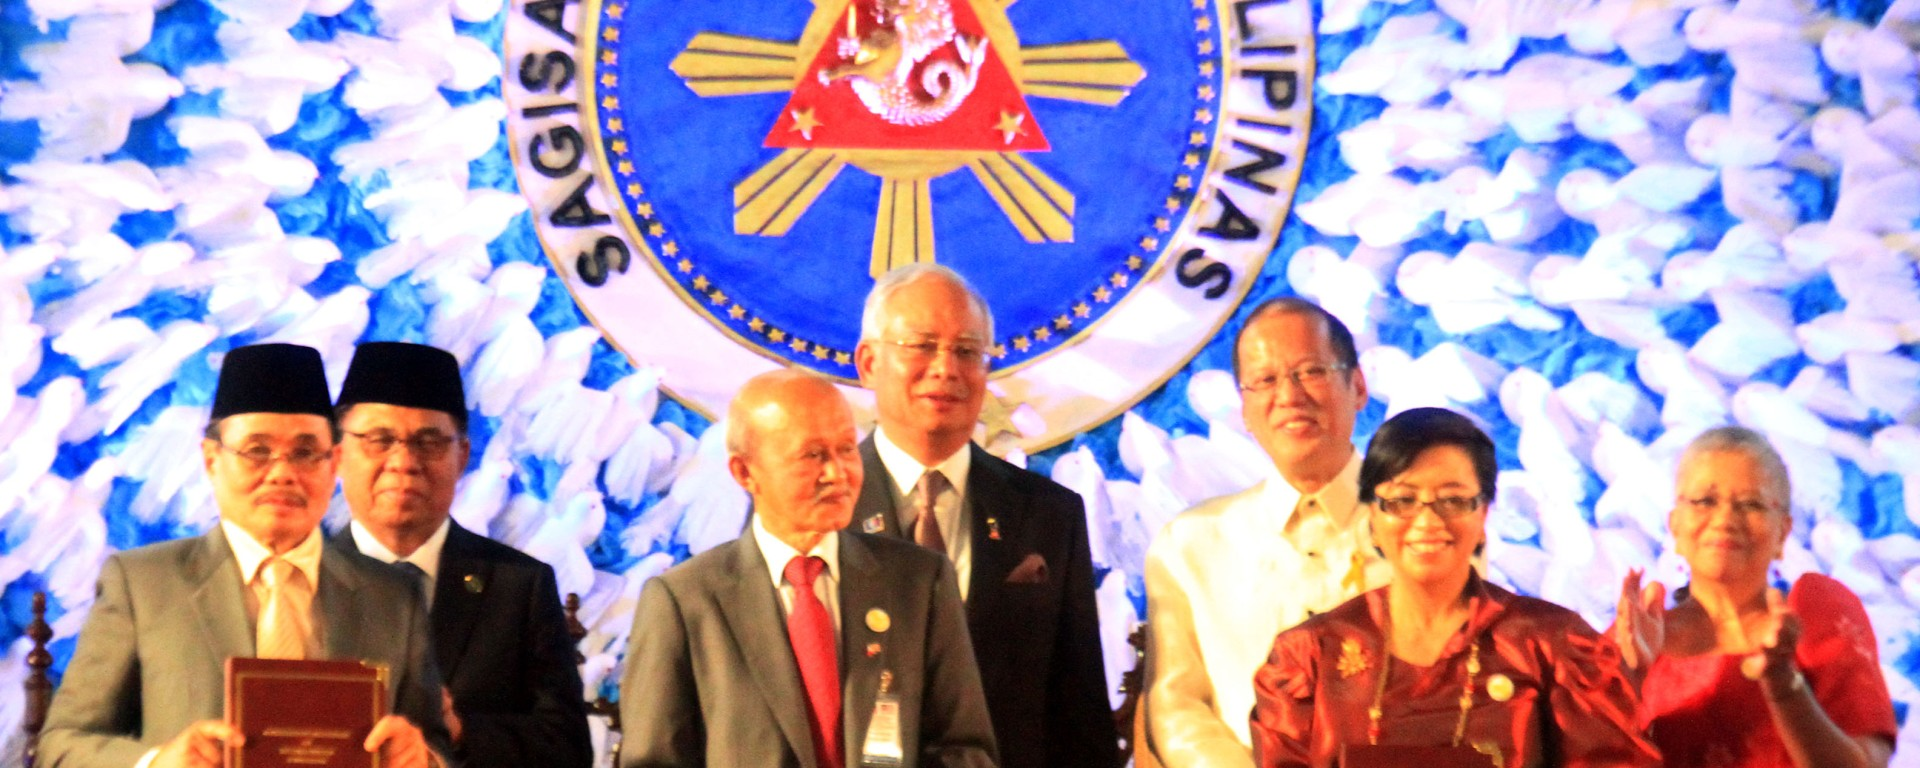 Mindanao Euphoric Over Gph Milf Peace Pact Signing The Durian Post